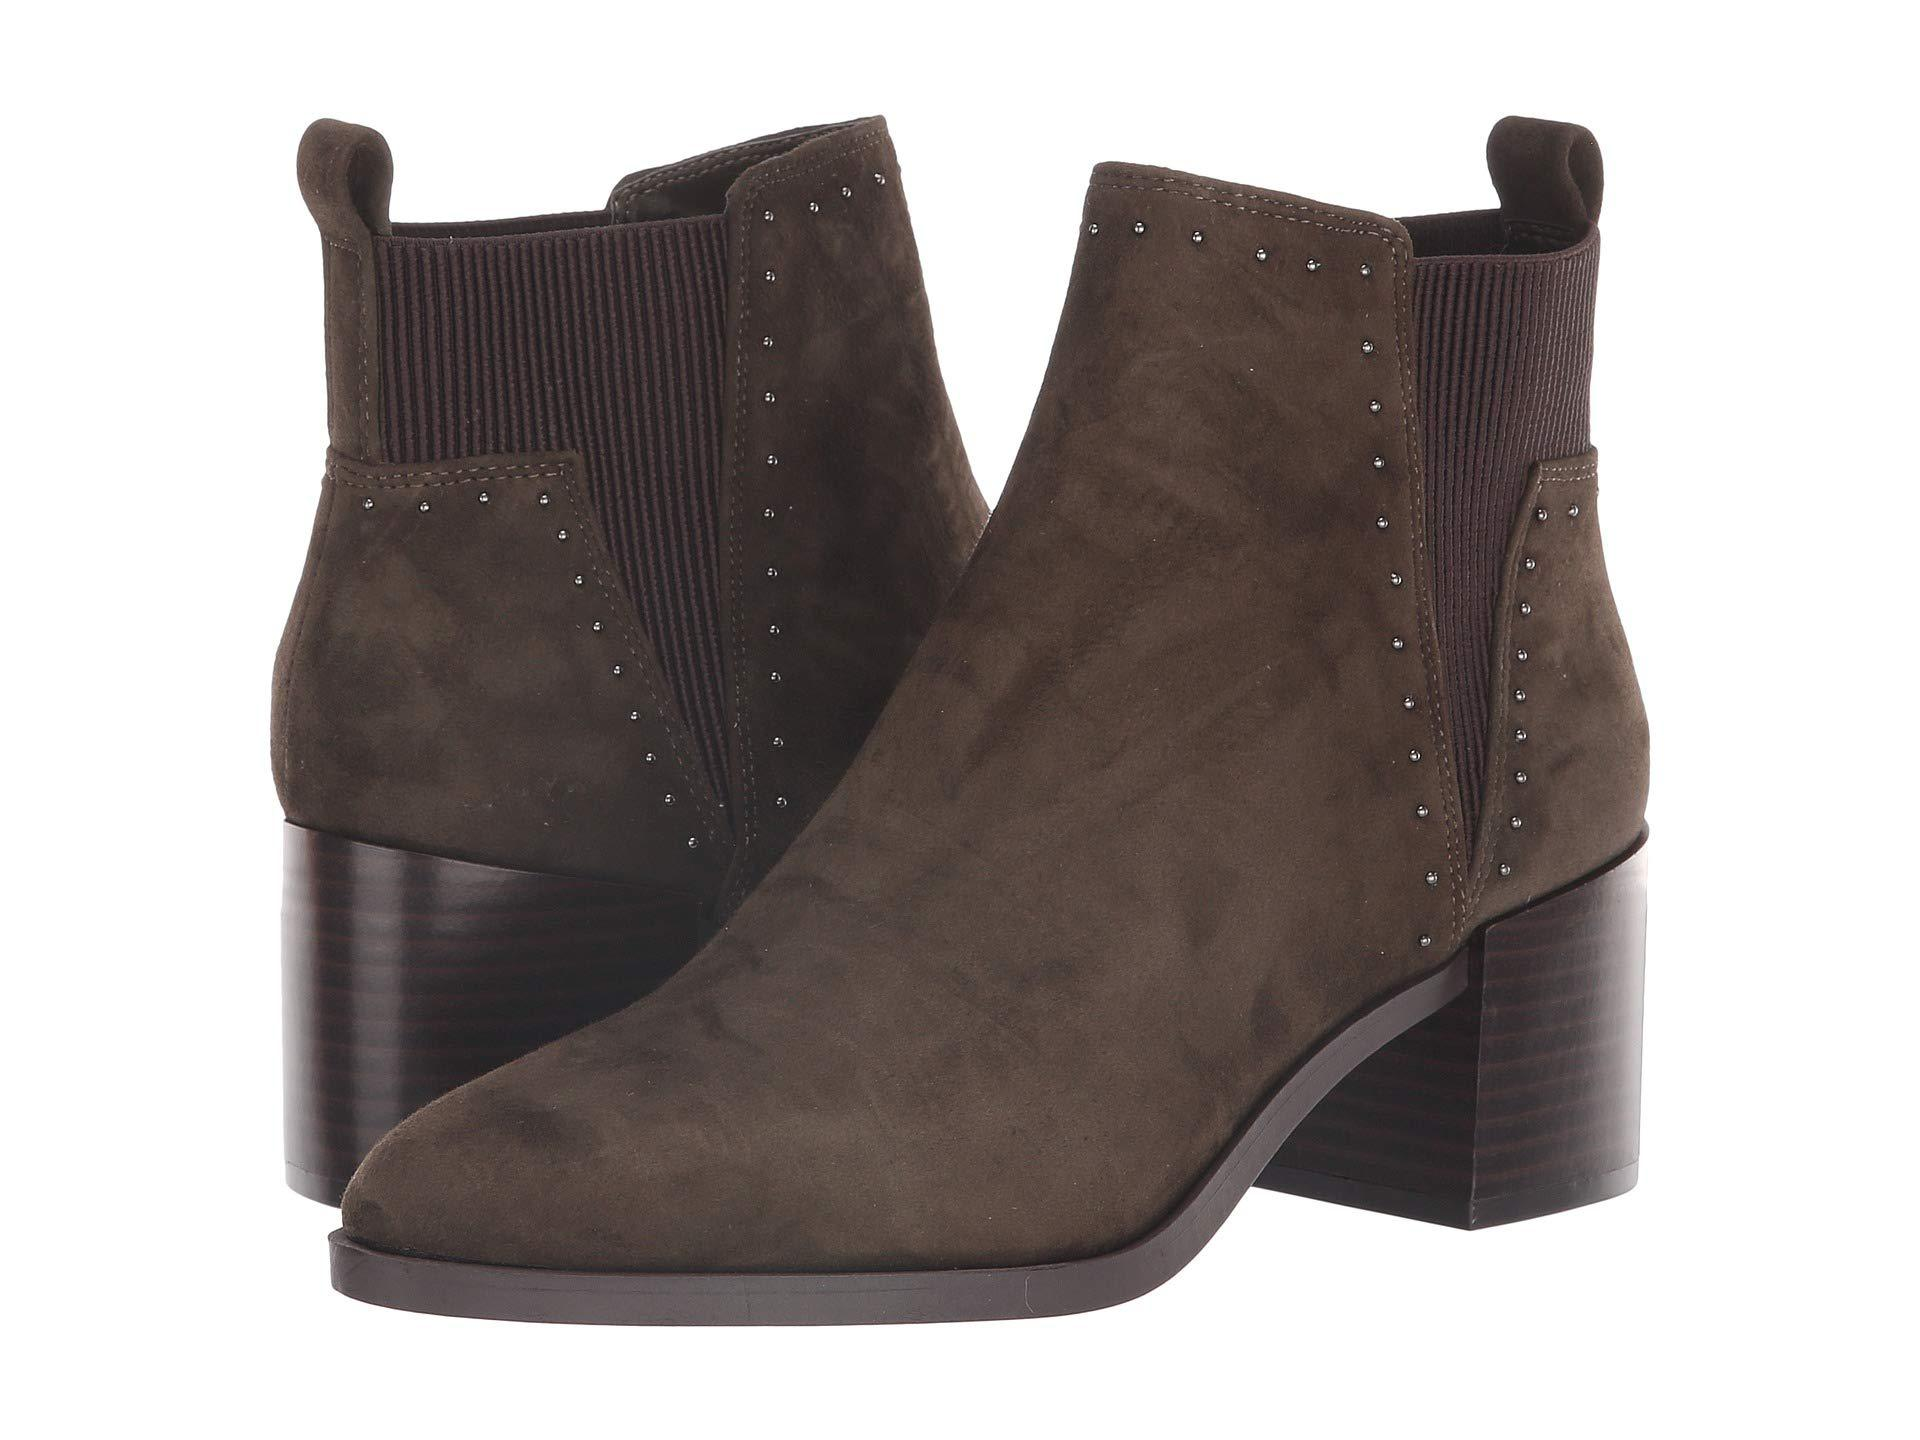 57392eb43c8cc Nine West Brown 'wutchu' Mid Heel Ankle Boots in Brown - Lyst